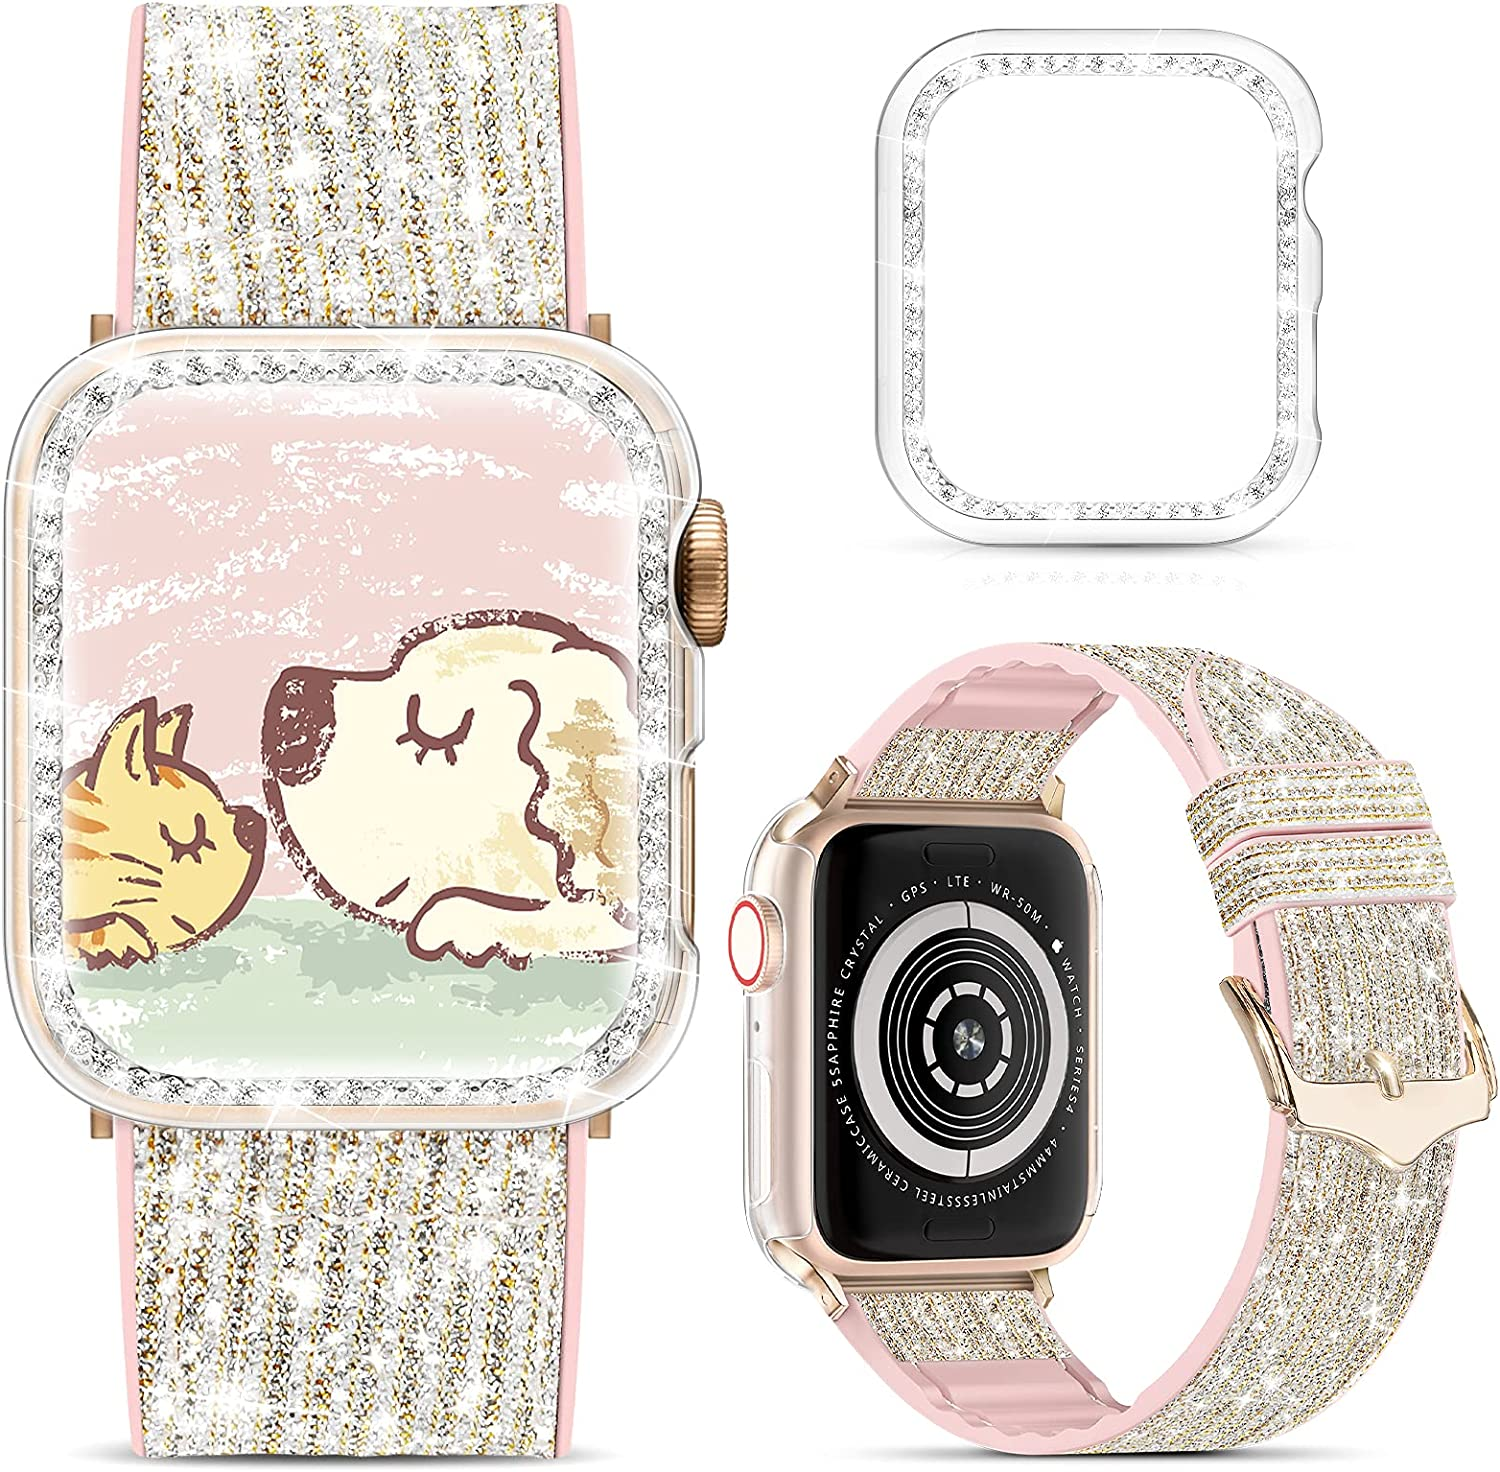 Marge Plus Compatible with Apple Watch Band 38mm 40mm 42mm 44mm with Case, Glitter Strap for Women, Sweatproof Genuine Leather and Silicone Band for iWatch Series 6/5/4/3/2/1 SE(38mm, Glitter Silver/Rose Gold)